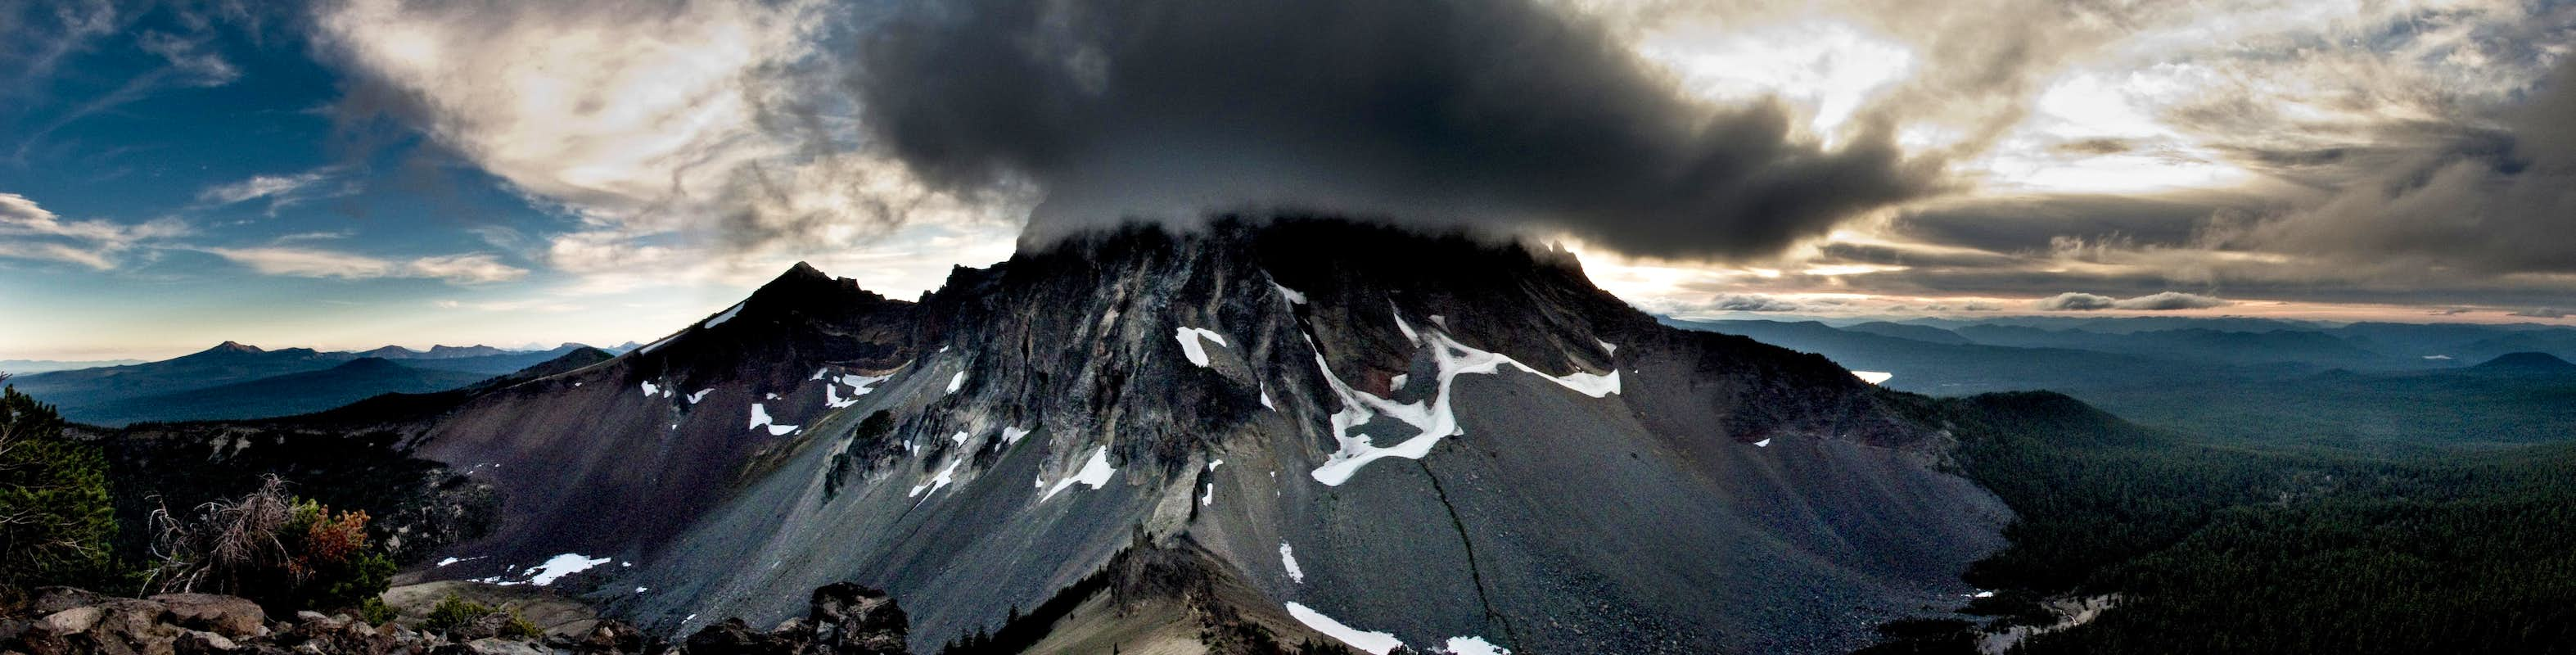 EPIC PANO - Thielsen East Face